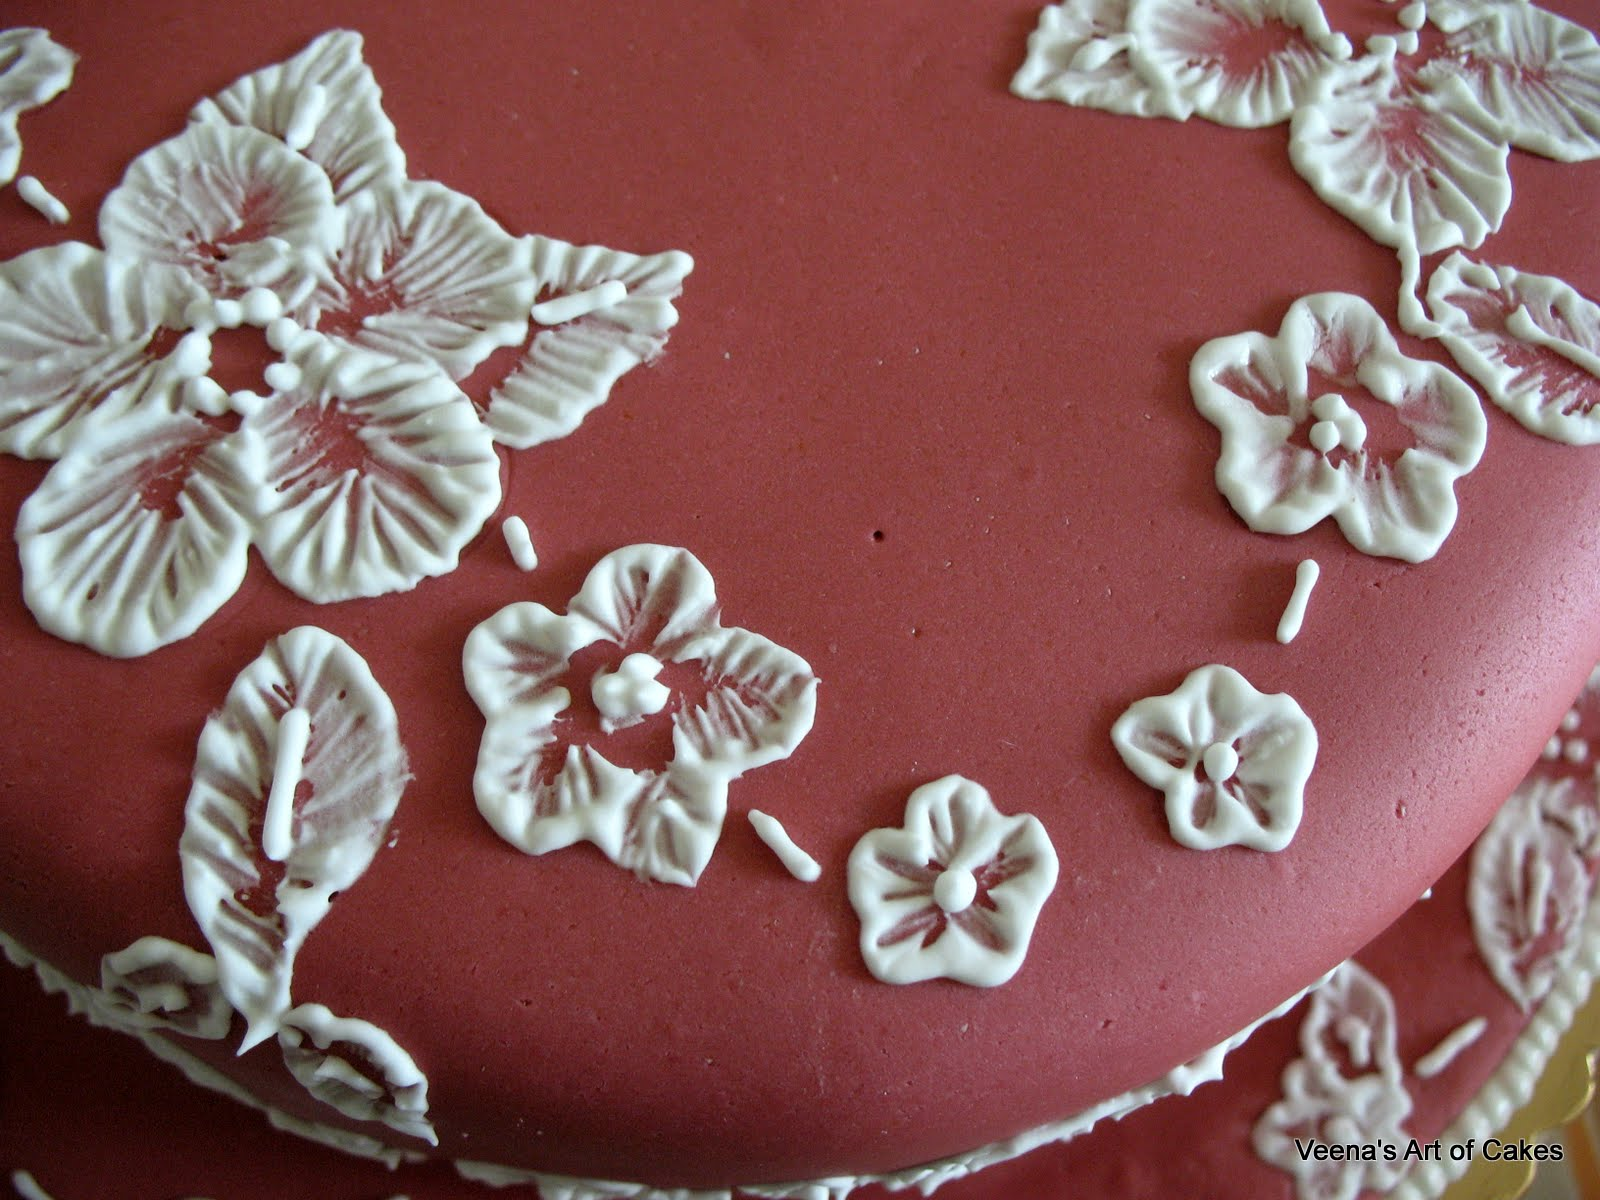 Veena s art of cakes brush embroidery cake lace design